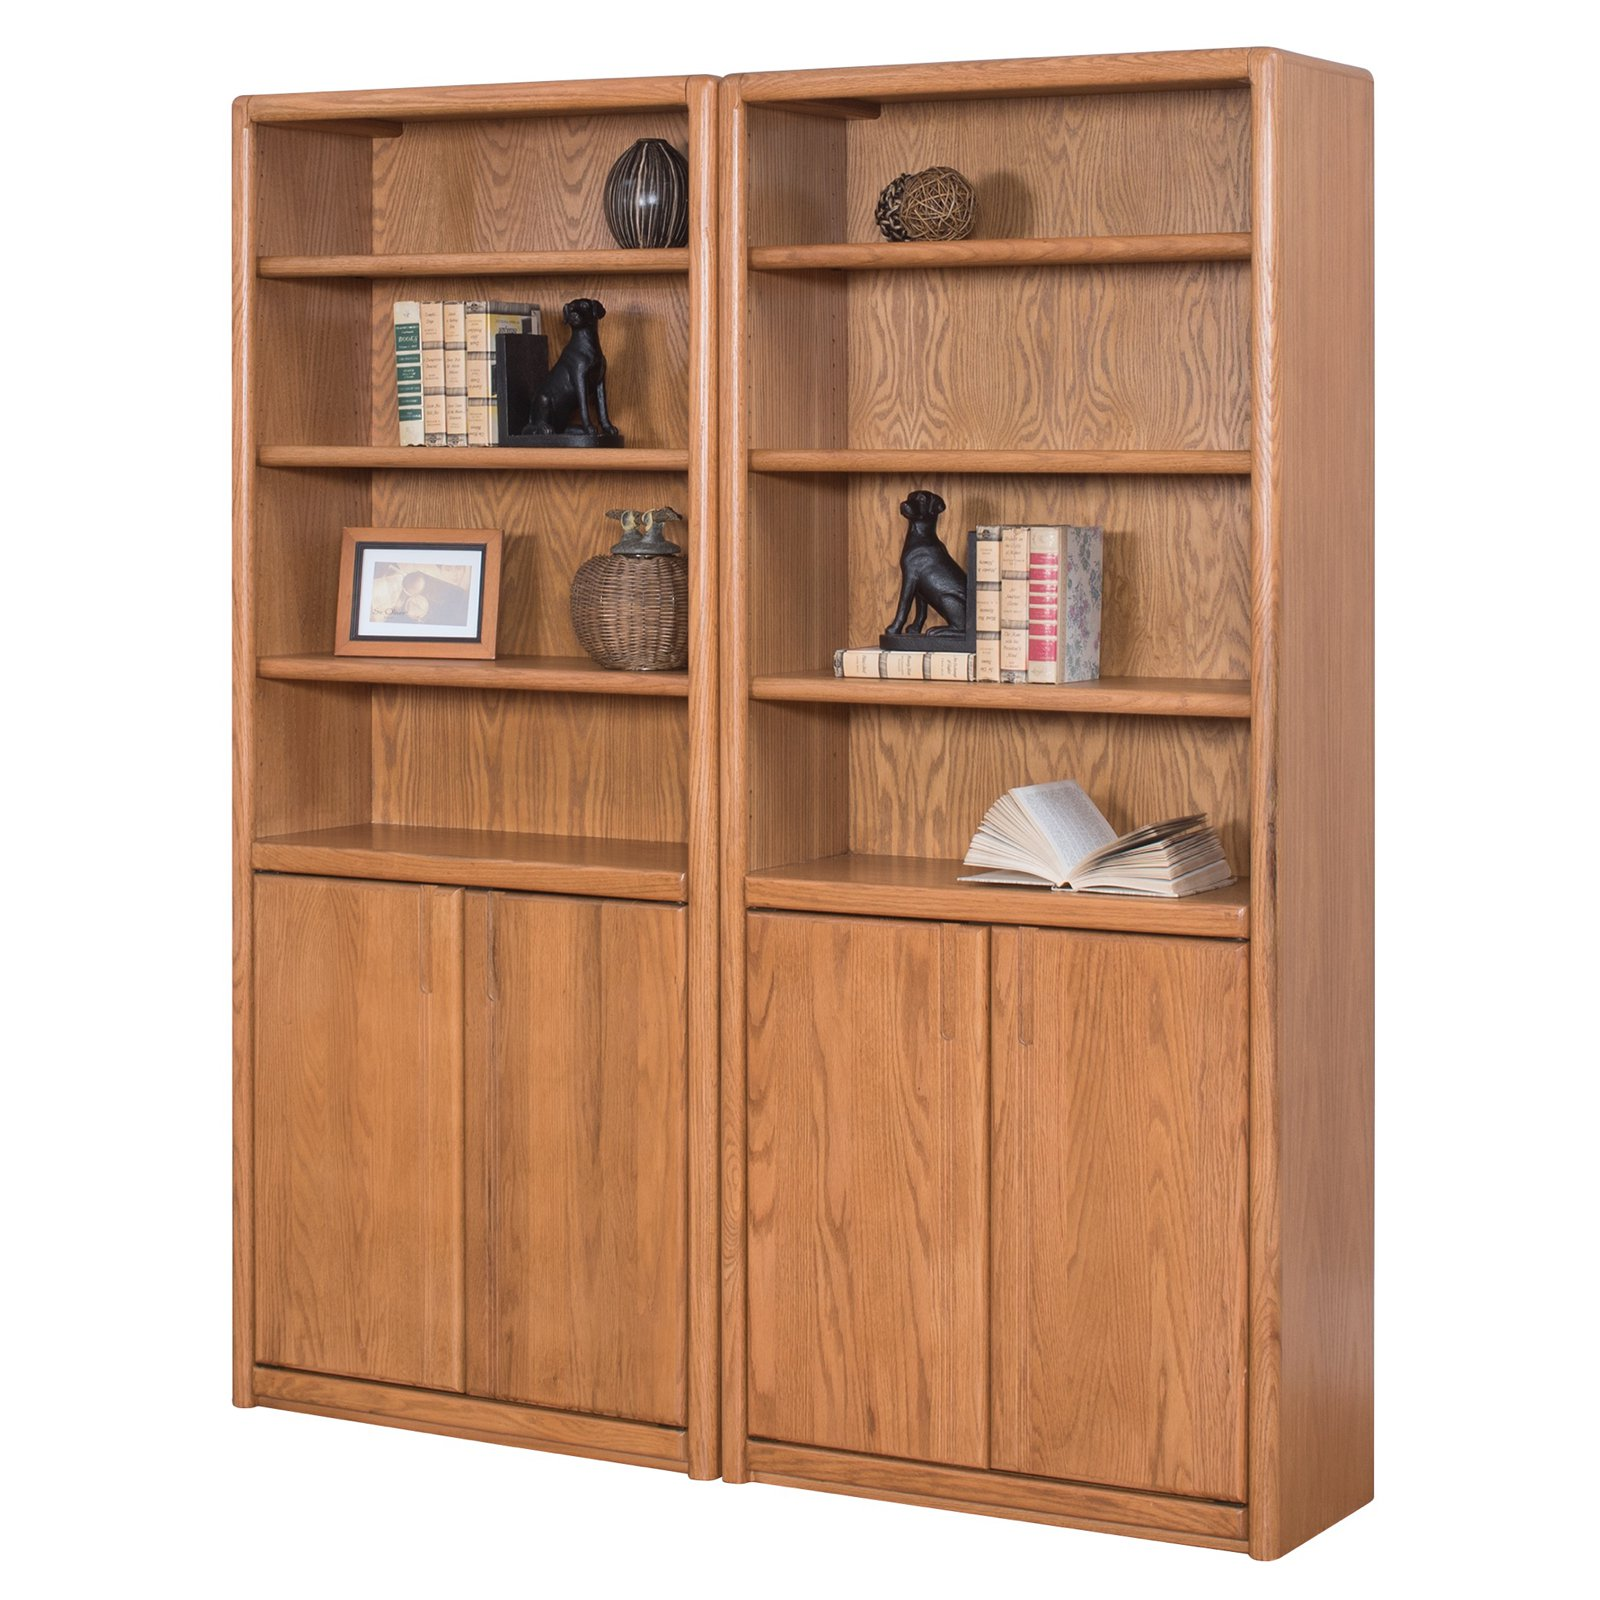 Martin Furniture Contemporary Wall Bookcase with Doors - Oak